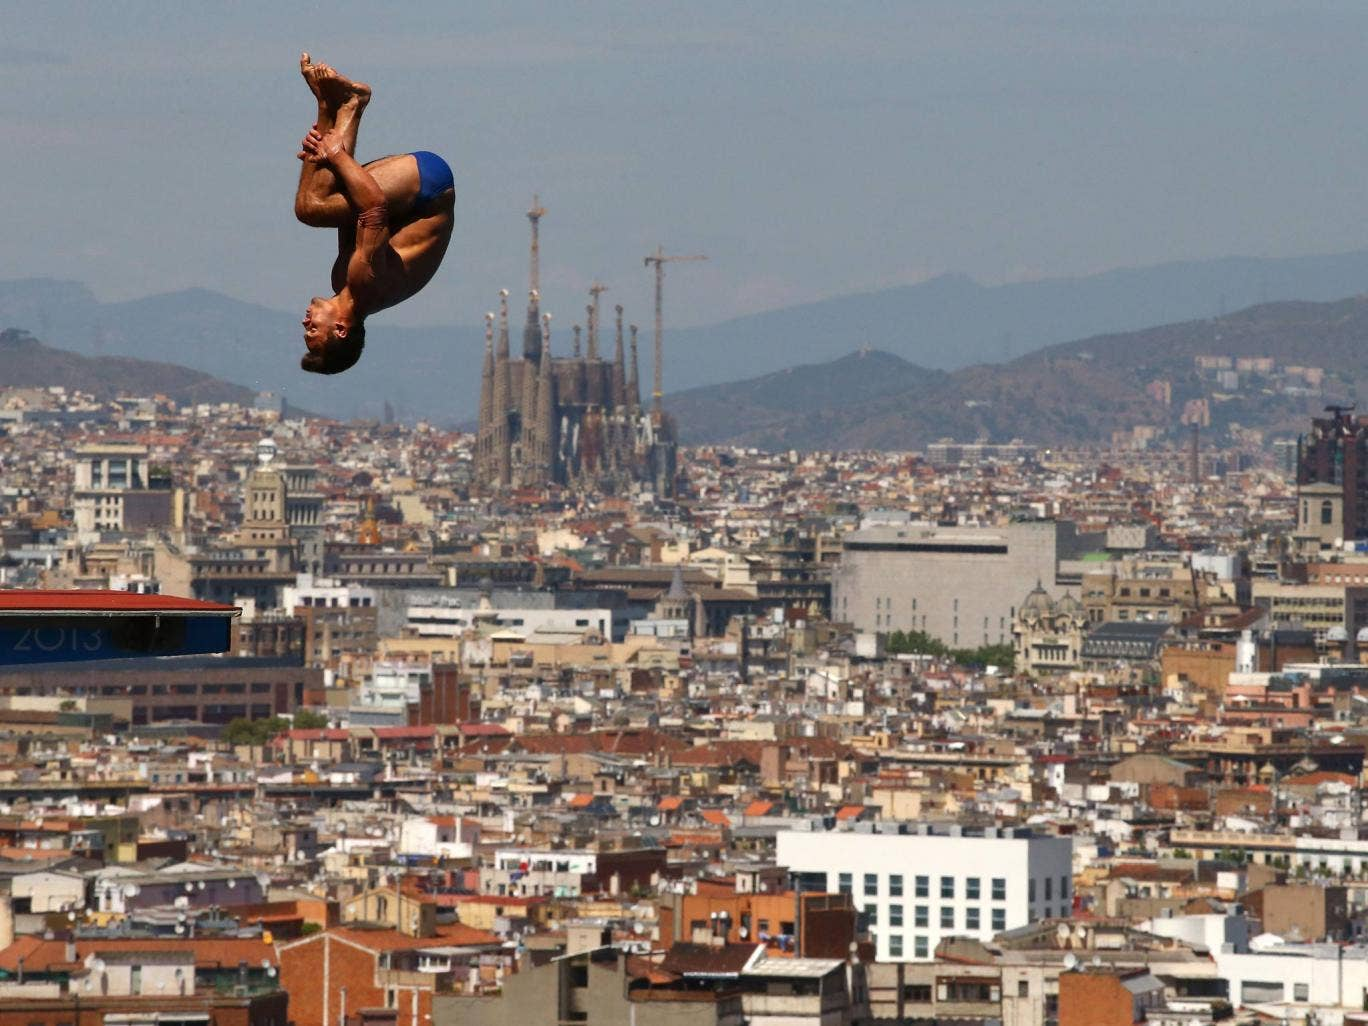 Tom Daley of Great Britain competes during the Men's 10m Platform Diving final